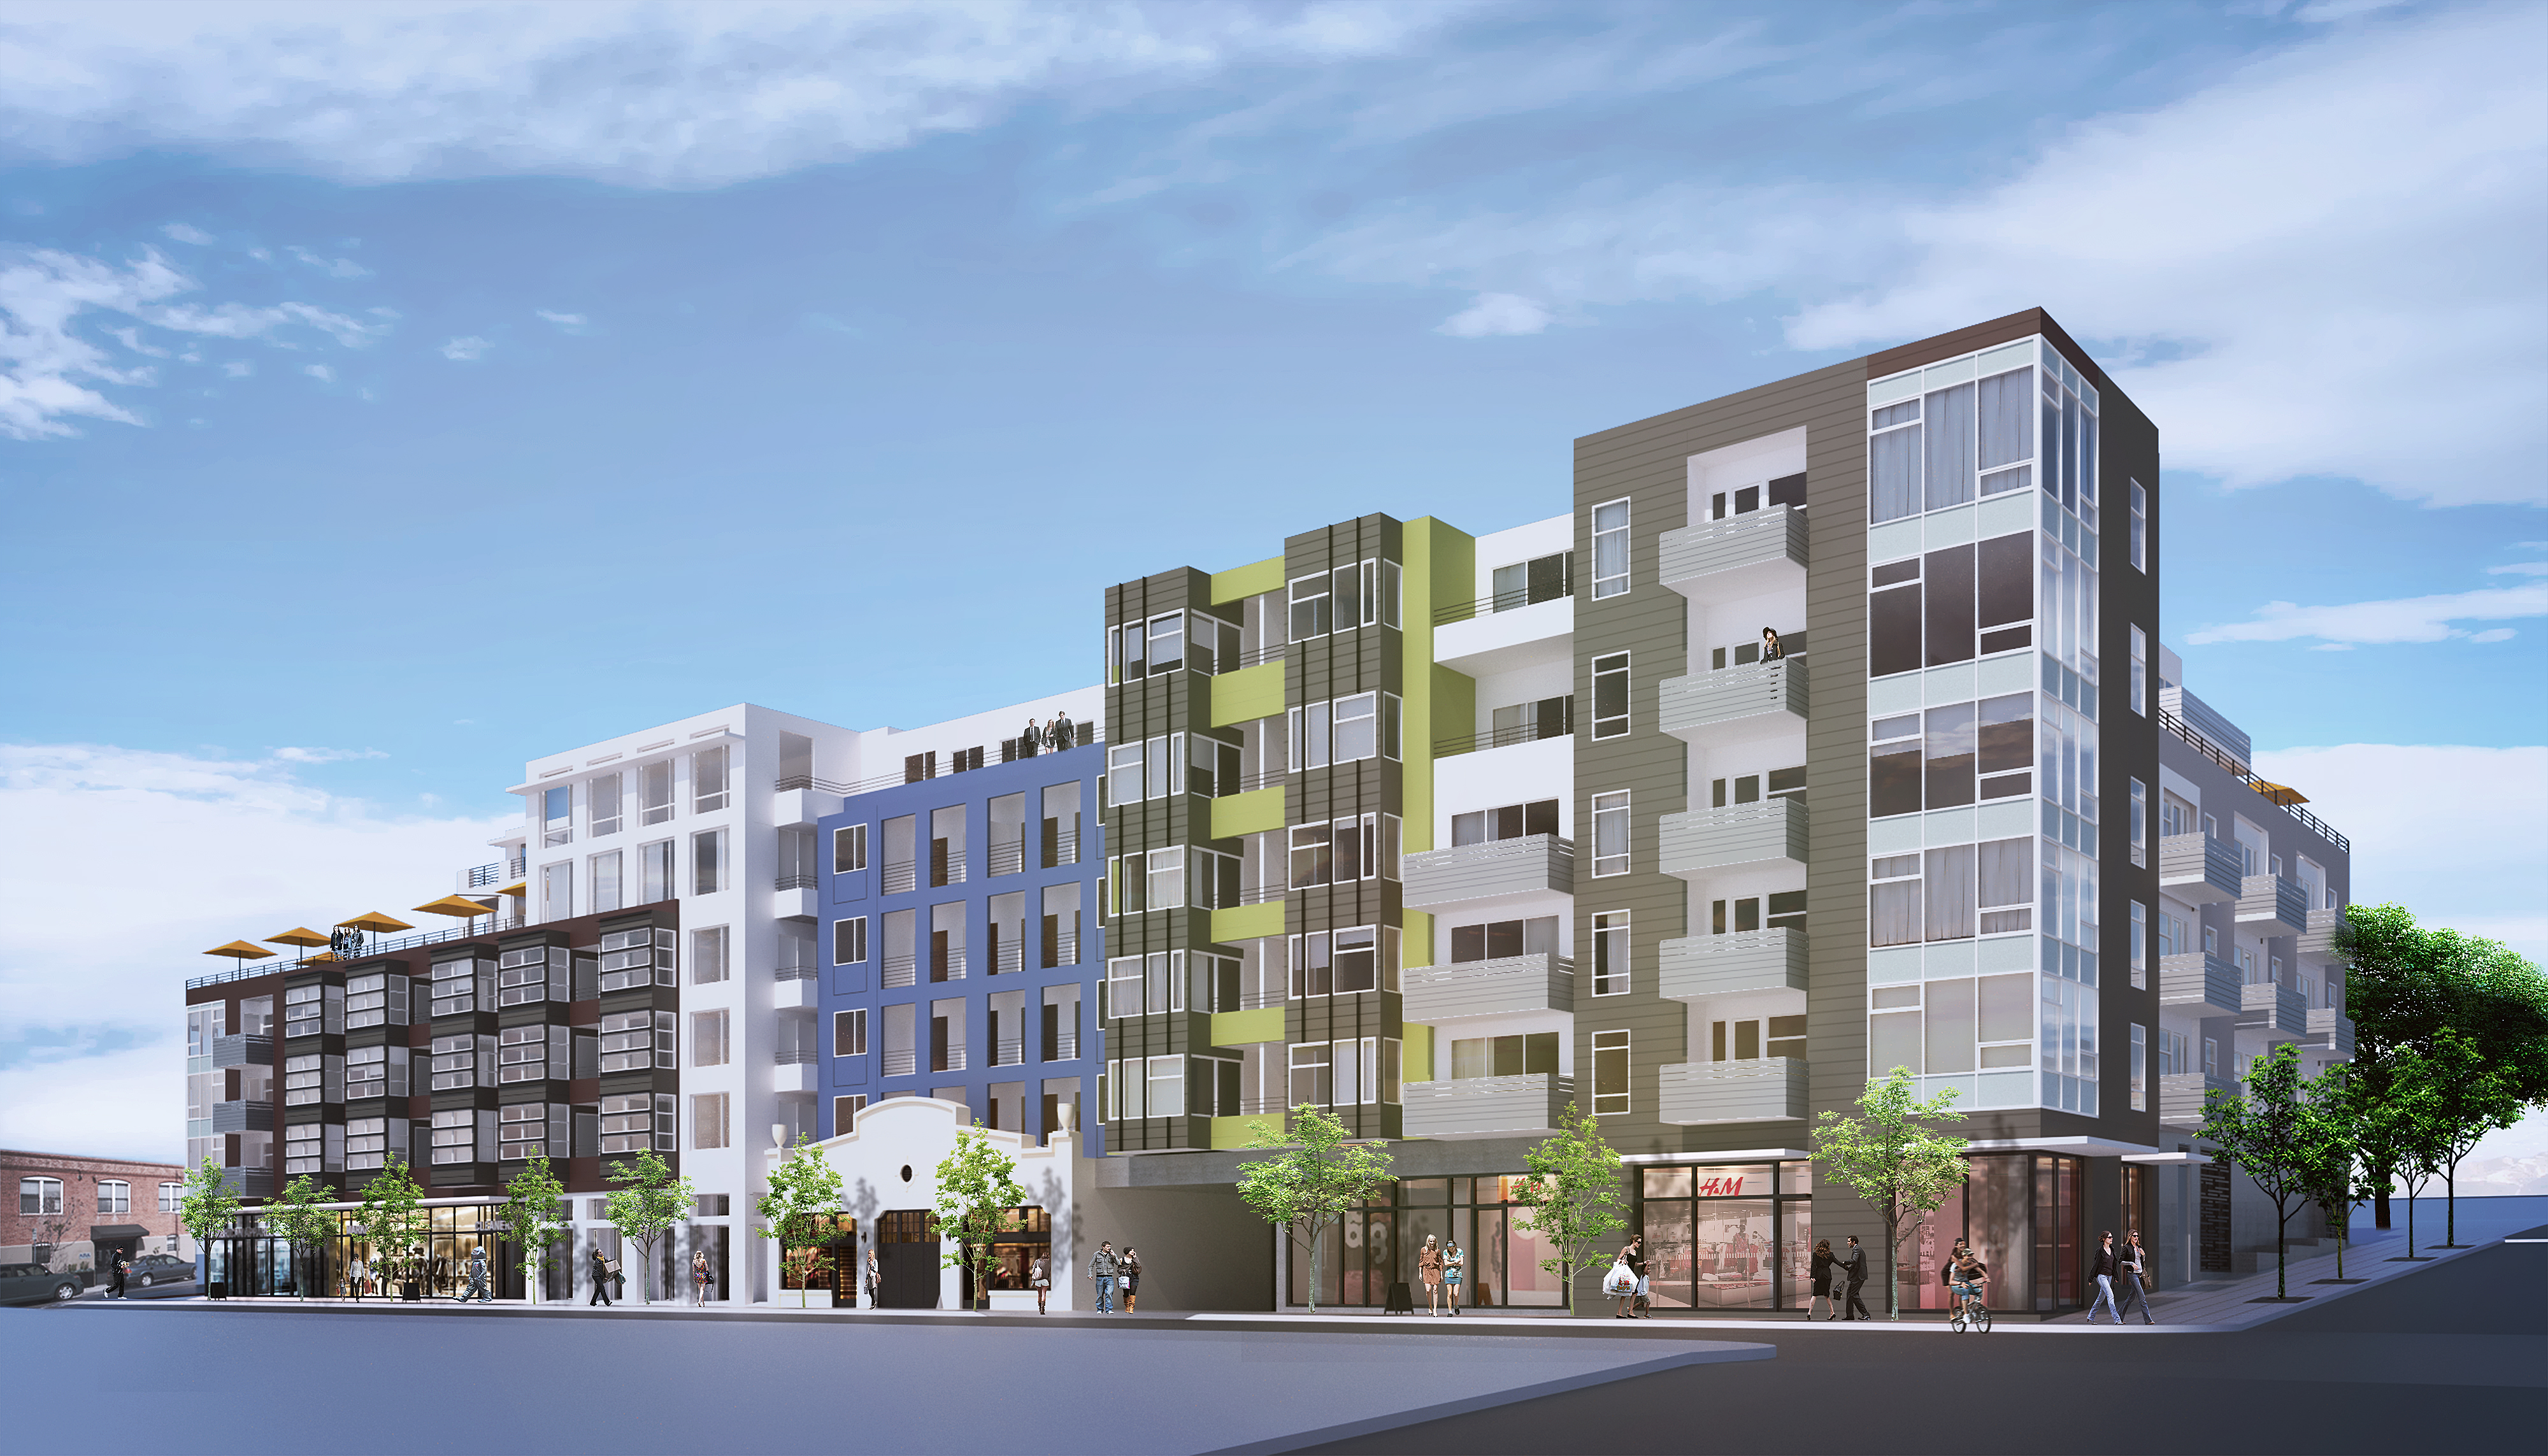 Rendering of CityMark Development's Little Italy project.